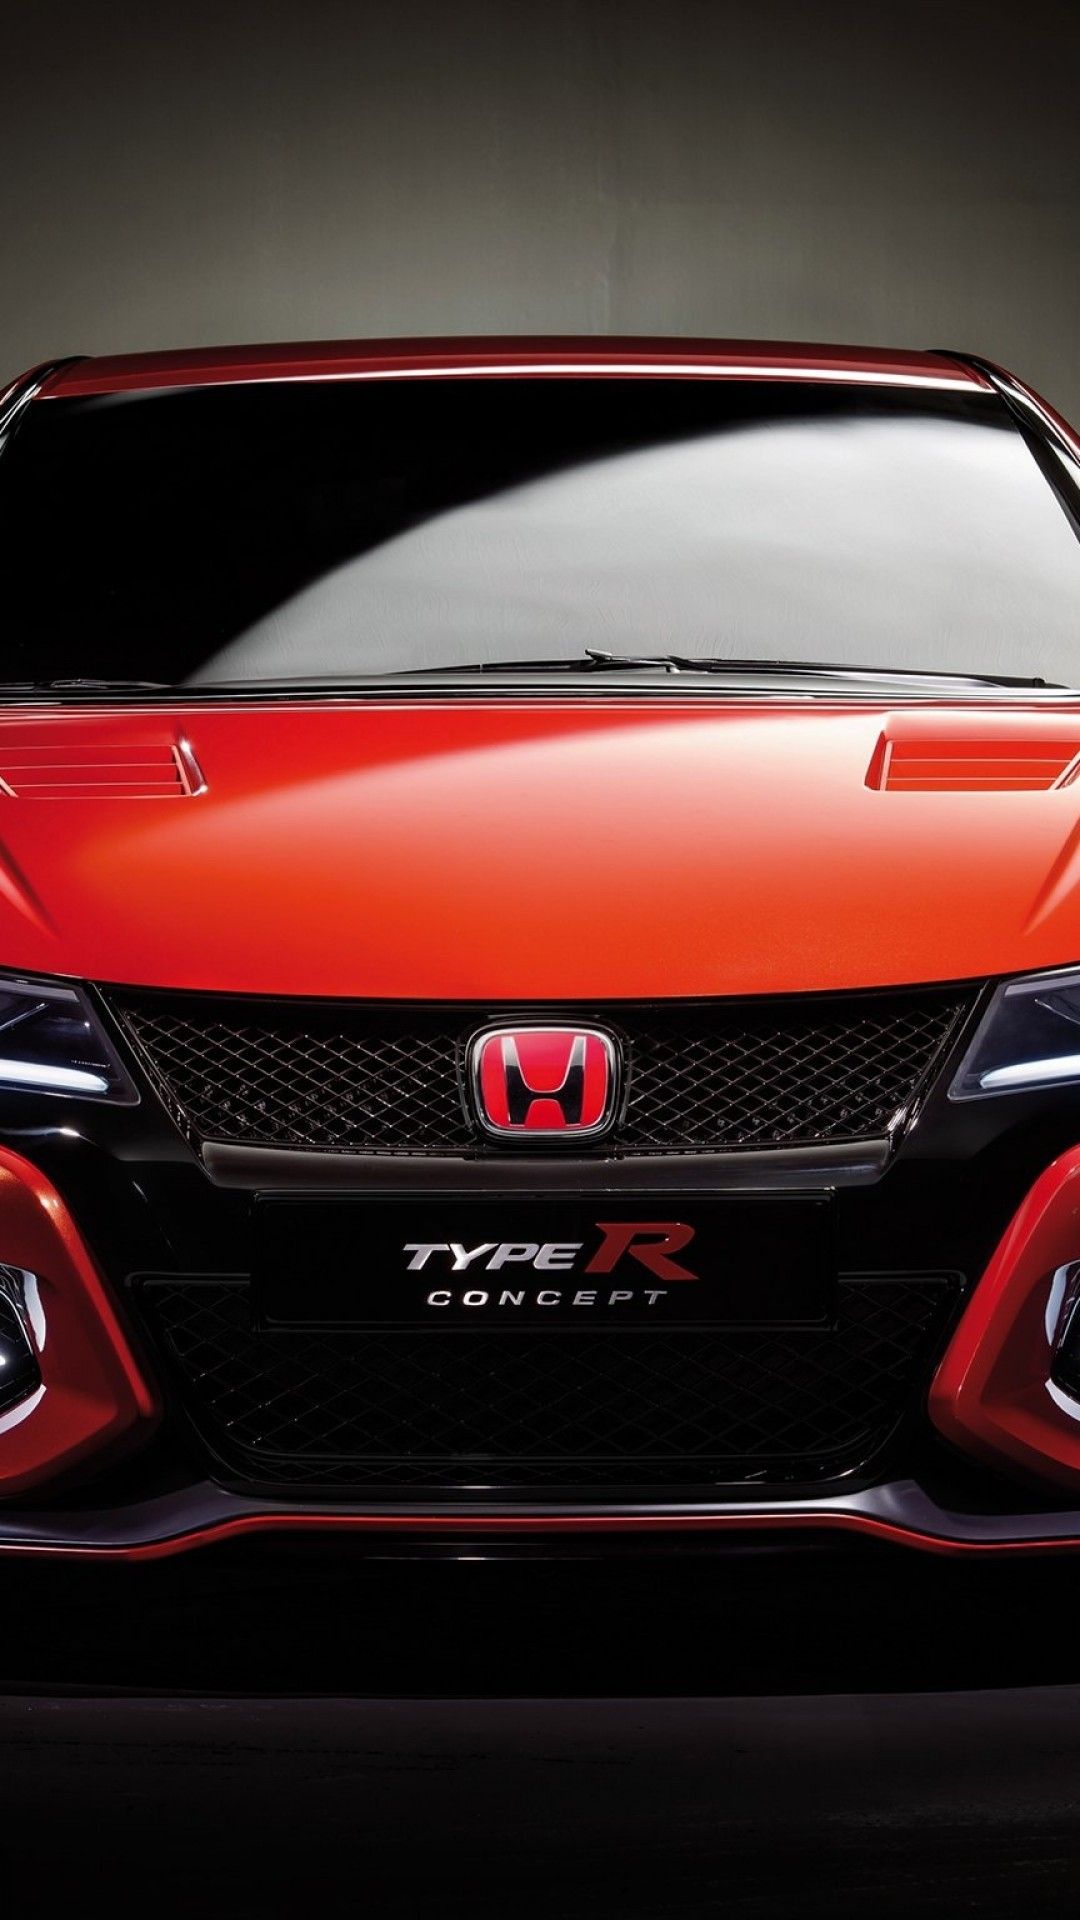 Honda Civic Type R Red Cars Front View Iphone Wallpaper Honda Civic Type R 1080x1920 Wallpaper Teahub Io